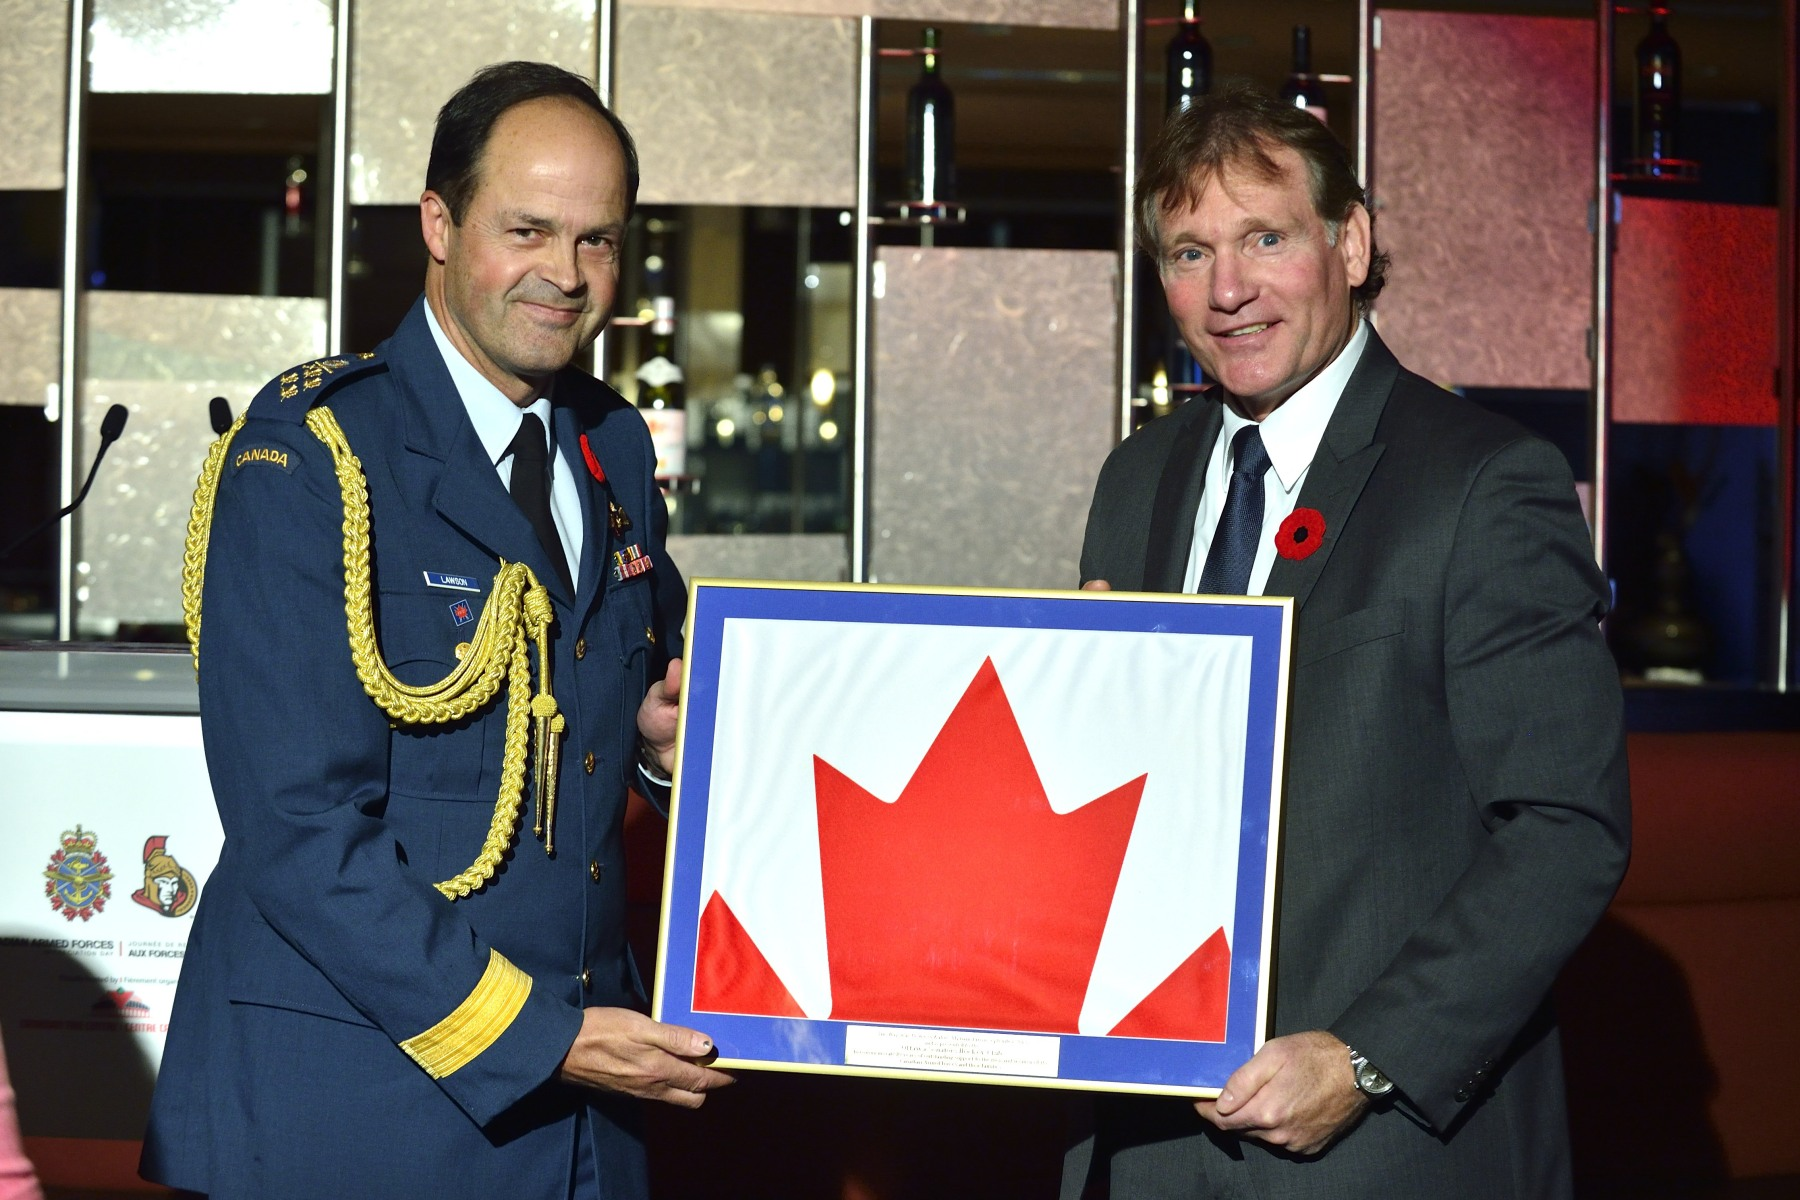 General Tom Lawson presented the Canadian flag that was flown in Kandahar, Afghanistan, to Mr. Cyril Leeder, President of the Ottawa Senators.